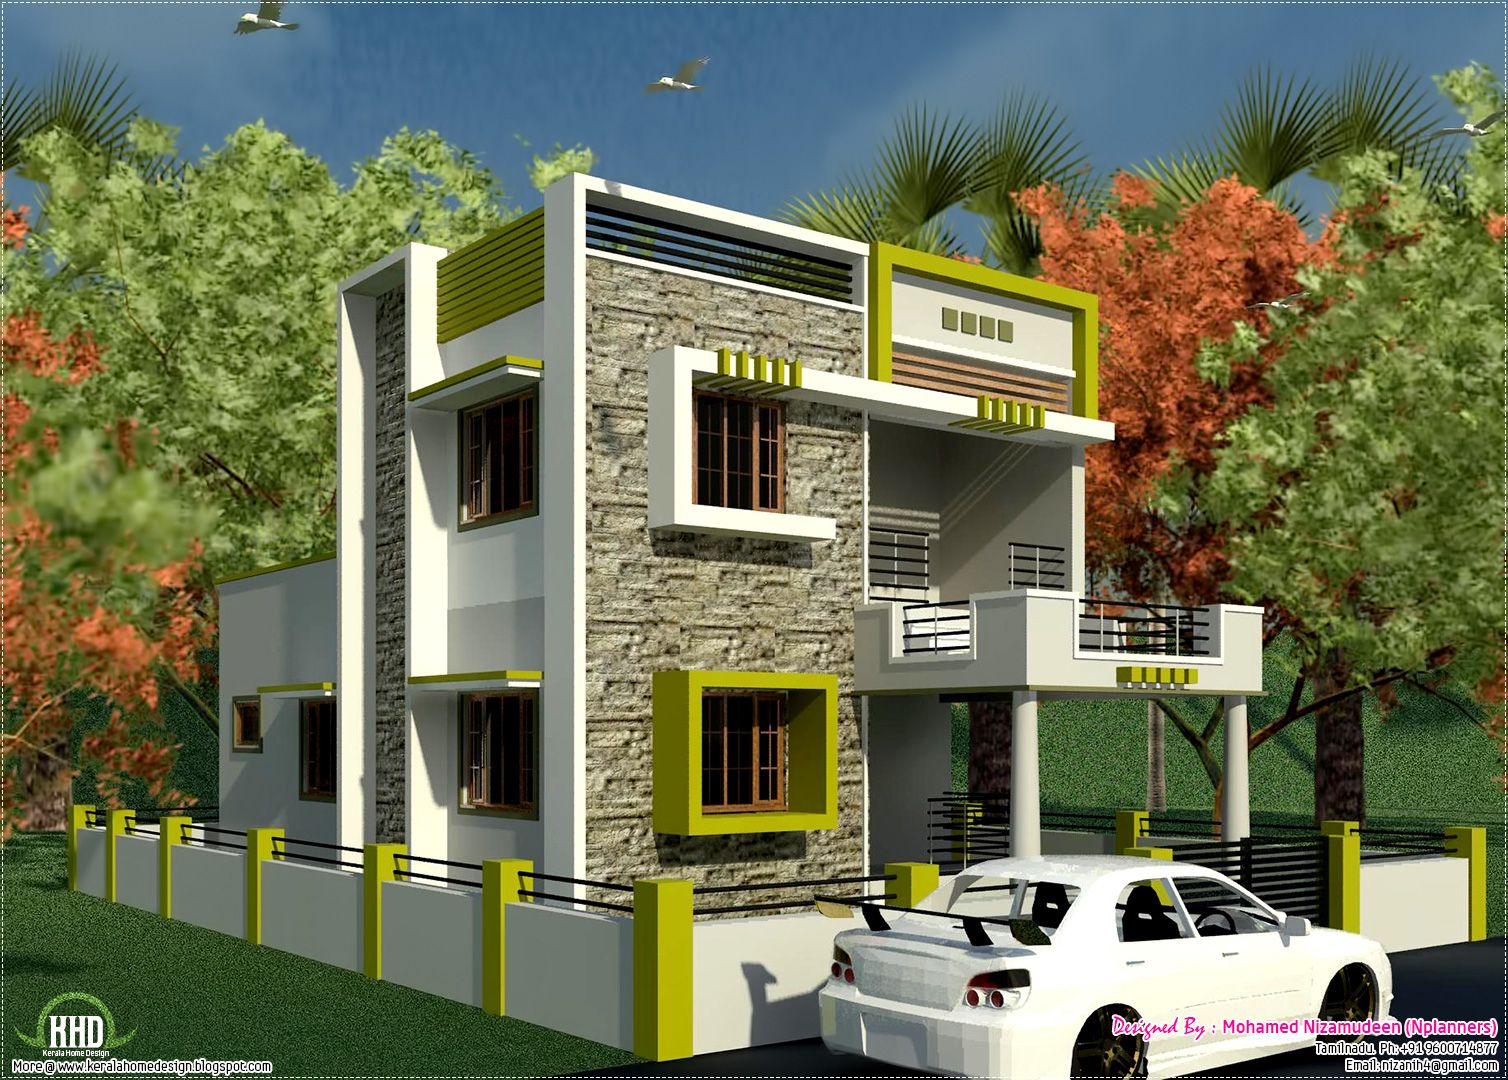 Small house with car park design tobfav com ideas for for Best house plans indian style